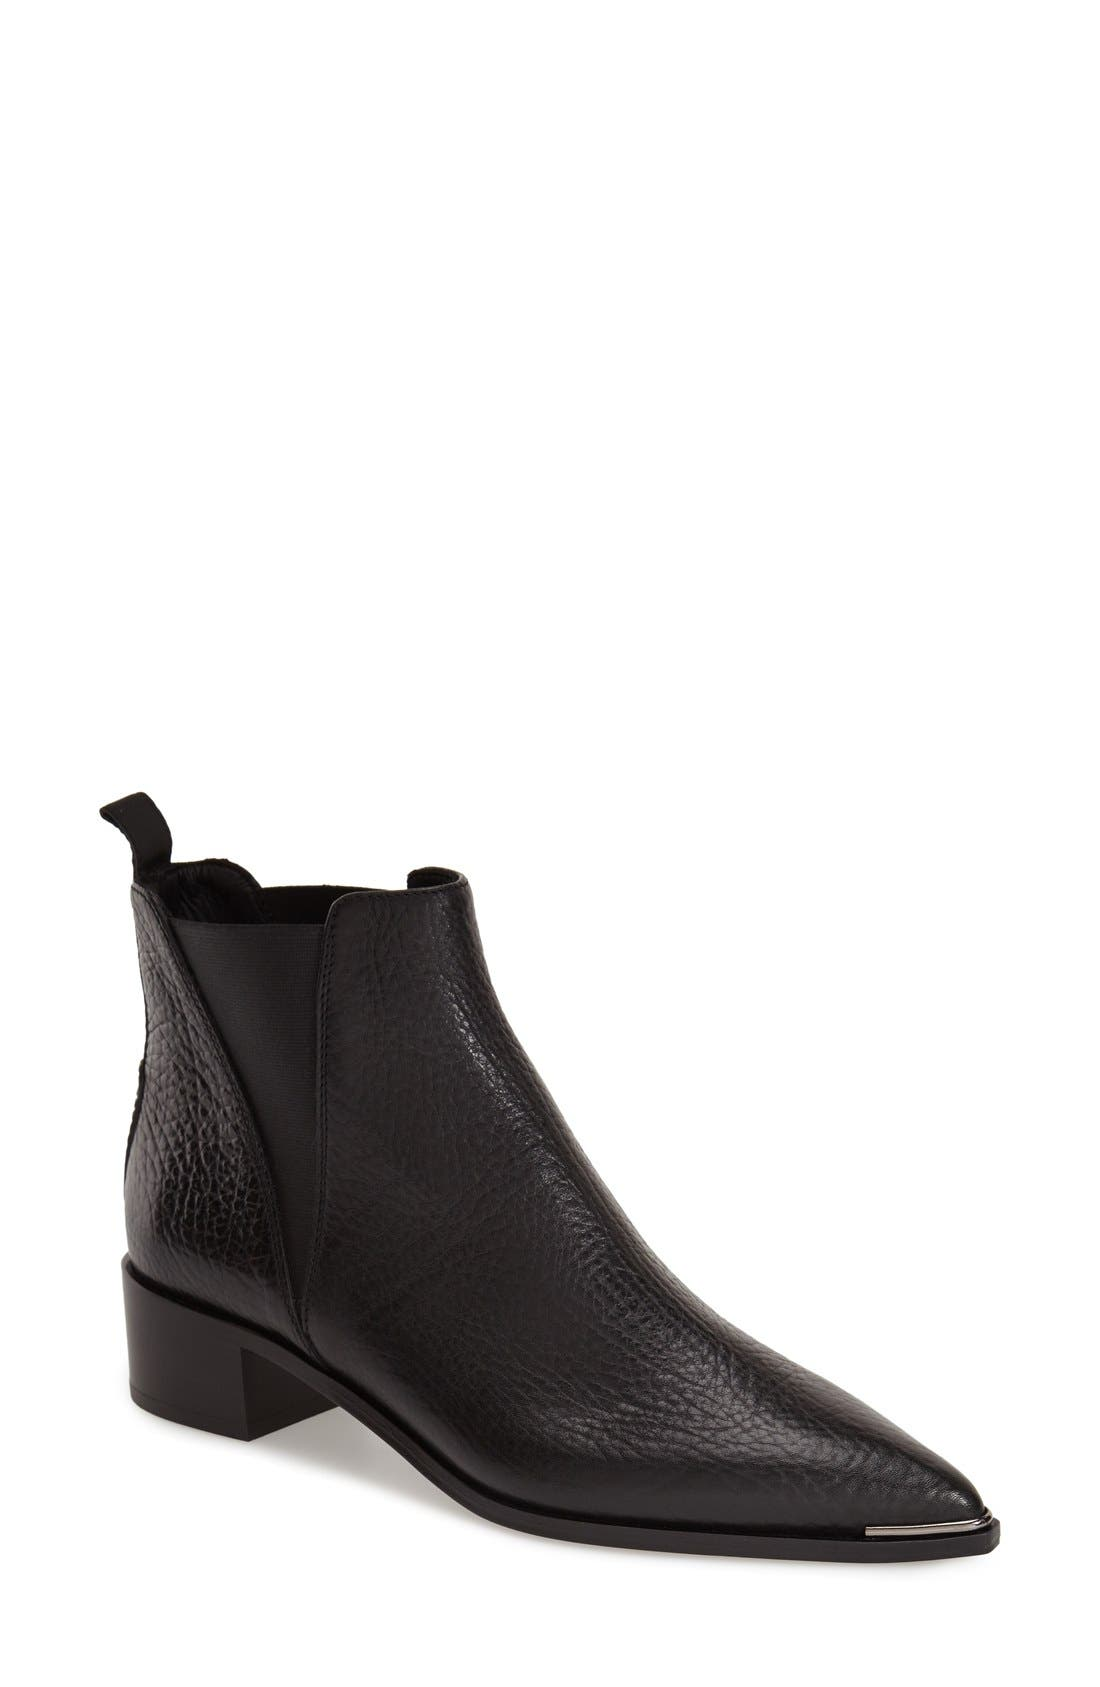 Jensen Pointy Toe Bootie,                         Main,                         color, BLACK GRAIN LEATHER